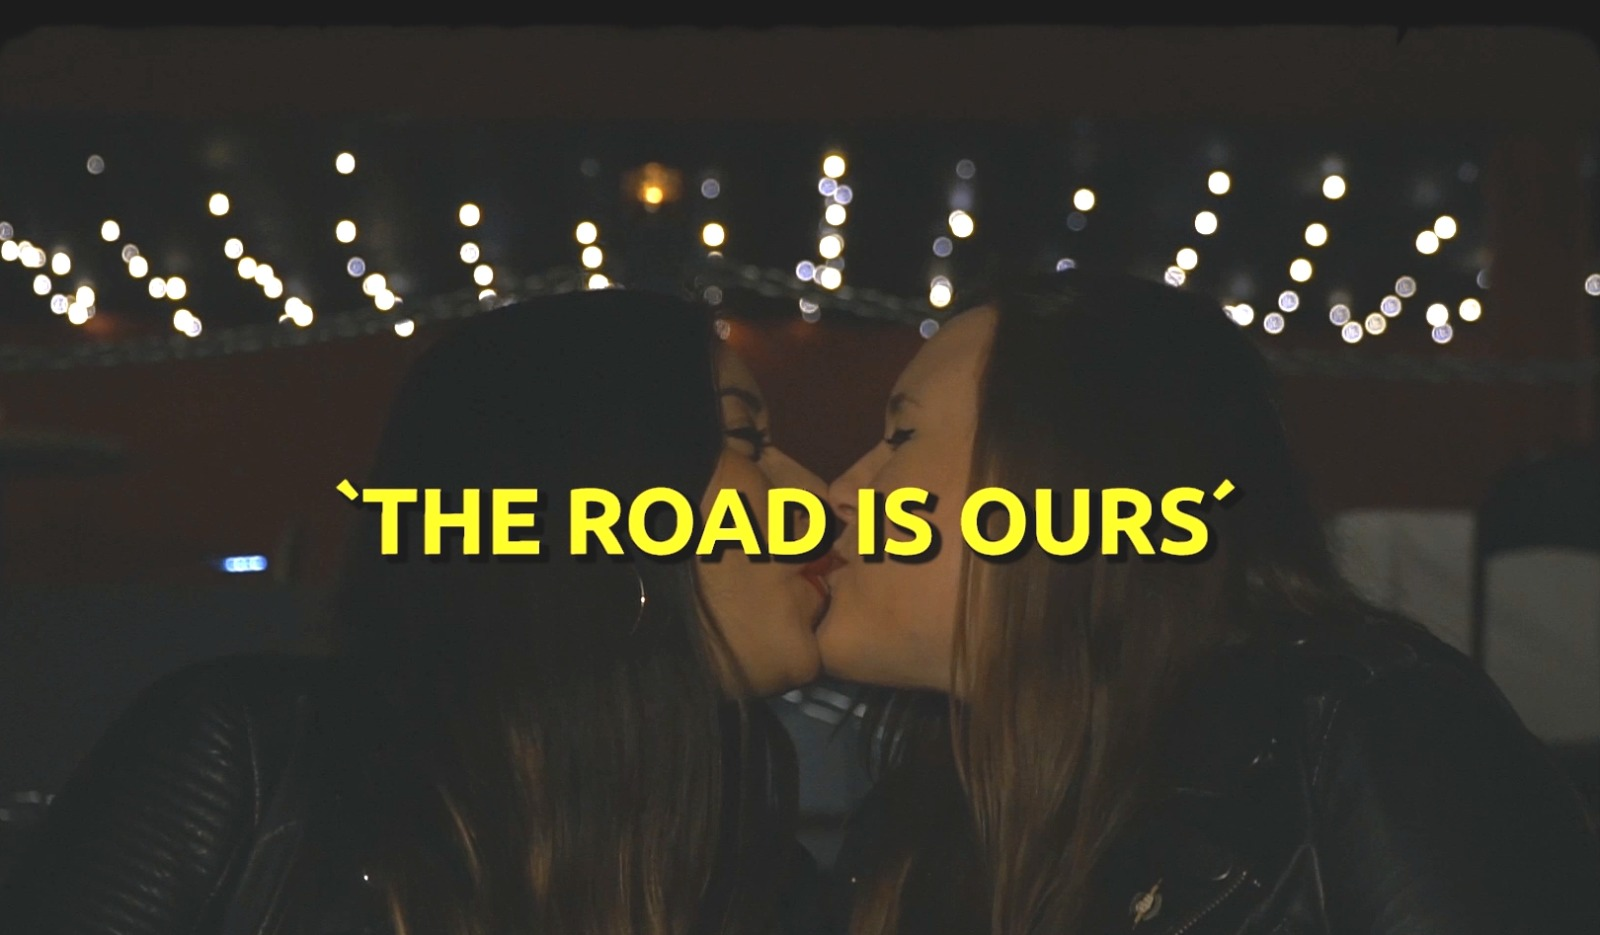 The Road Is Ours